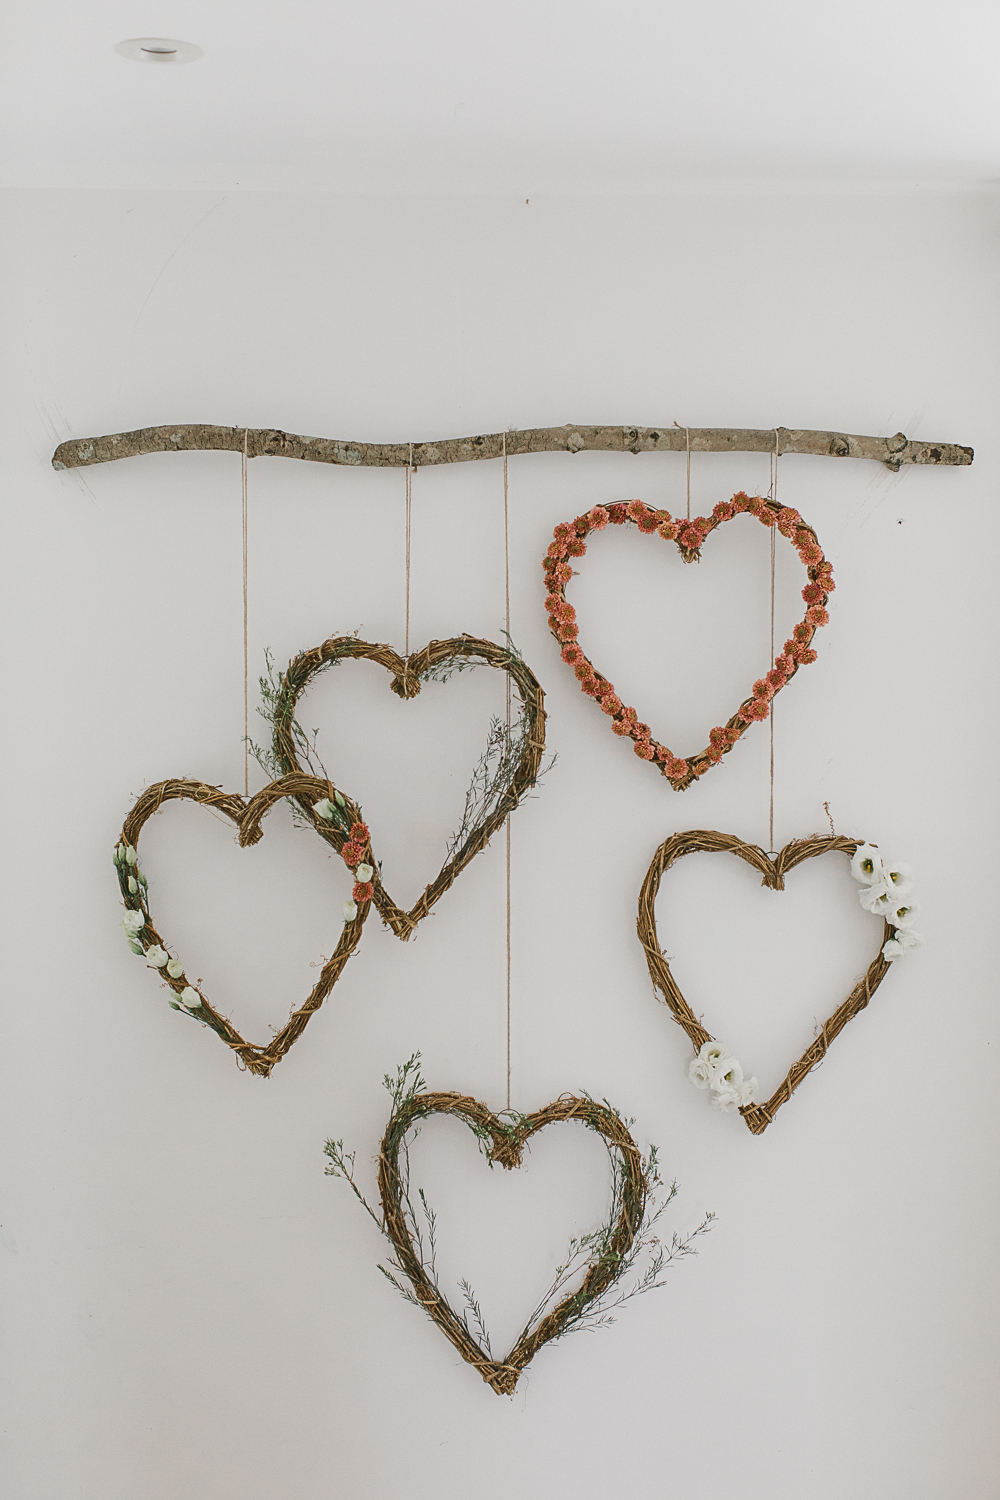 RMW DIY Hanging Floral Heart Wreath Tutorial for under £50!